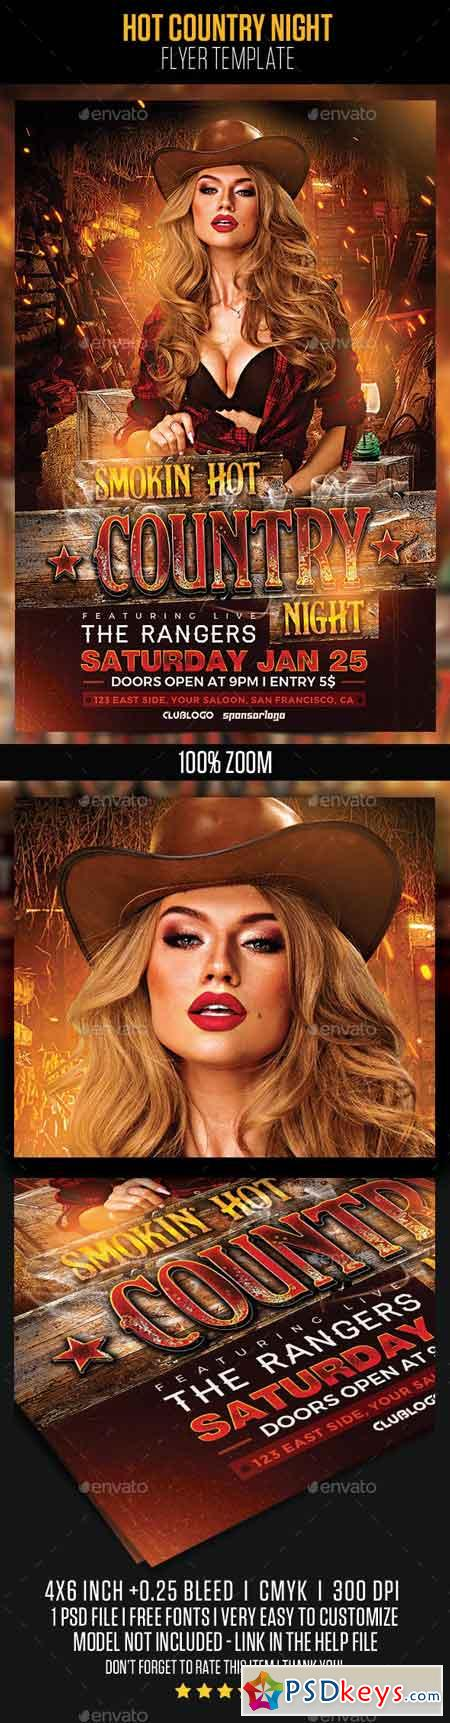 Hot Country Night Flyer Template 22997232